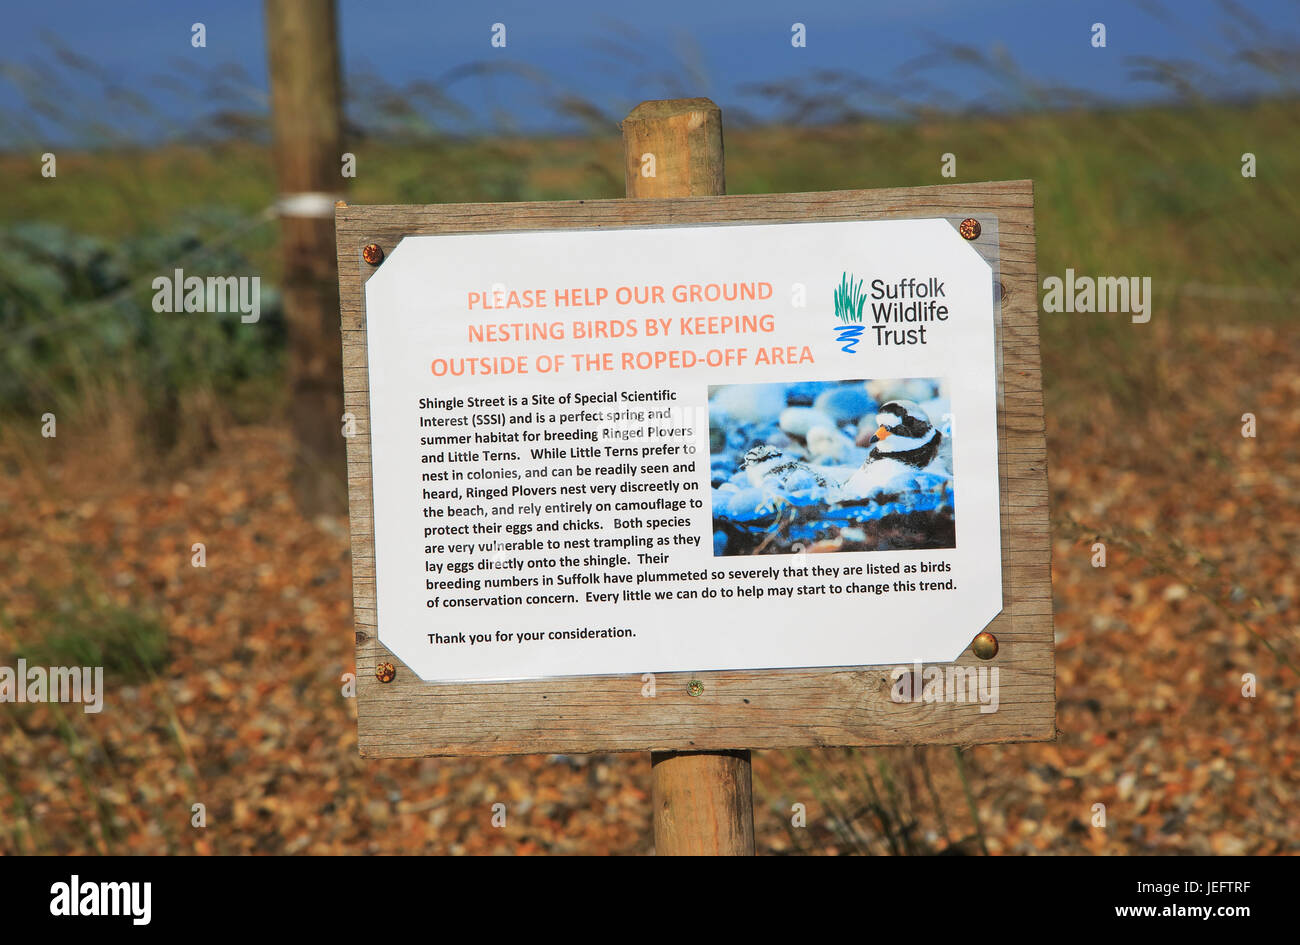 Suffolk Wildlife Trust sign about roped off nesting sites for birds, Shingle Street, Suffolk, England, UK Stock Photo